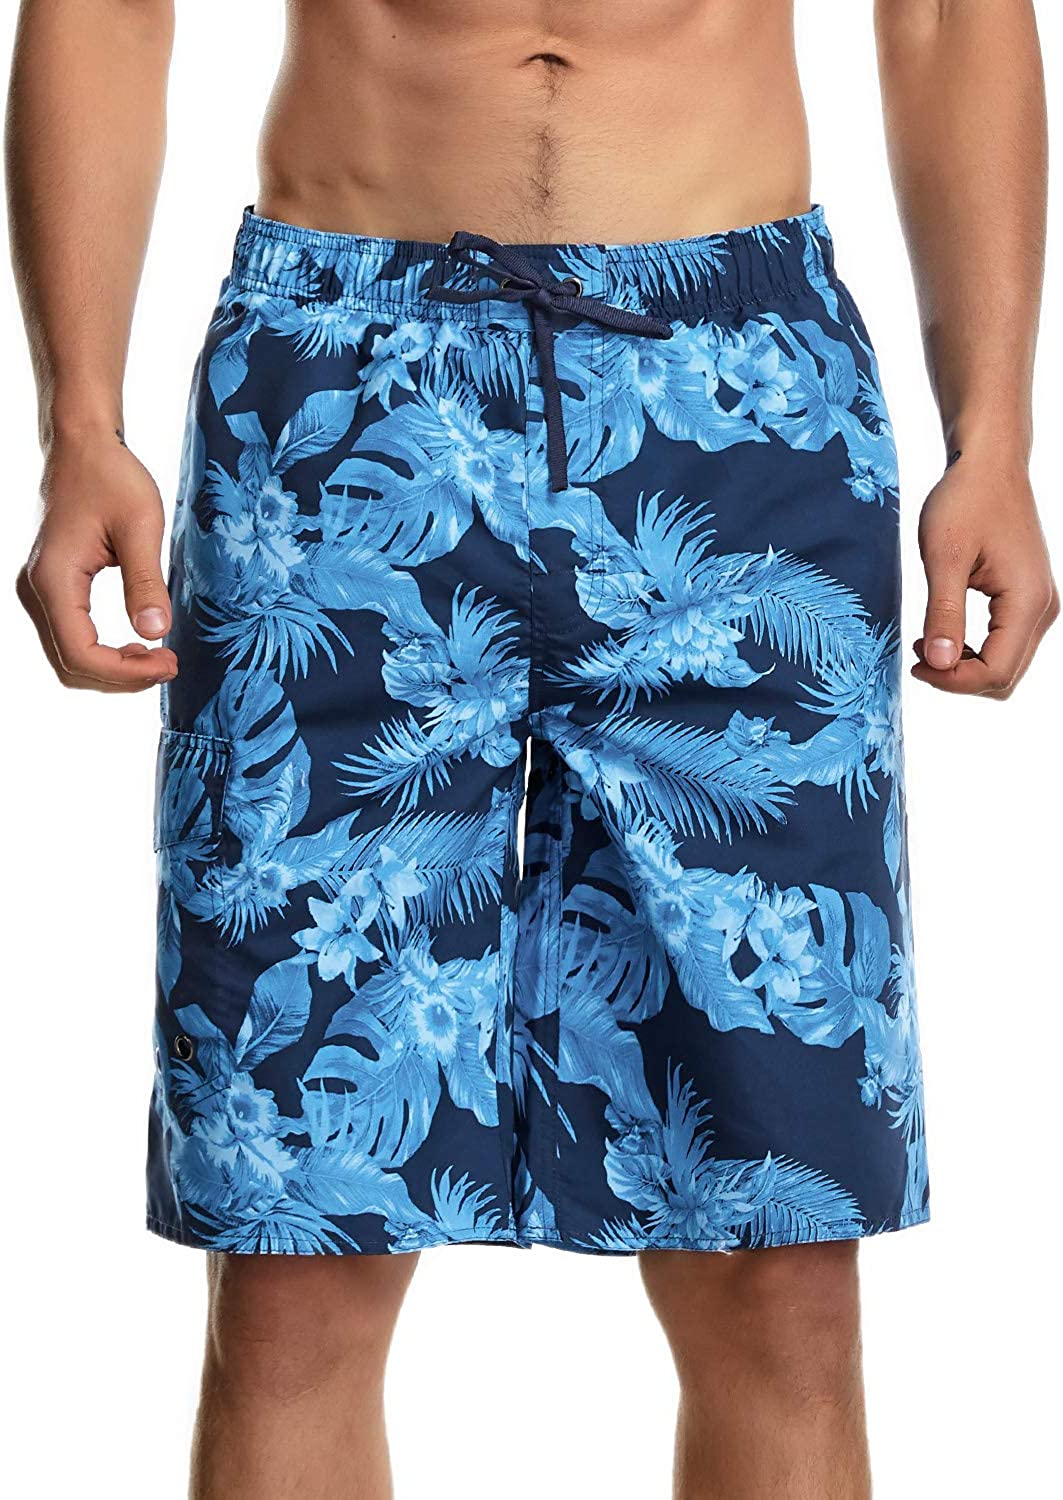 KLY Board Shorts for Men Swim Trunks Long Quick Dry with Lining and Pockets